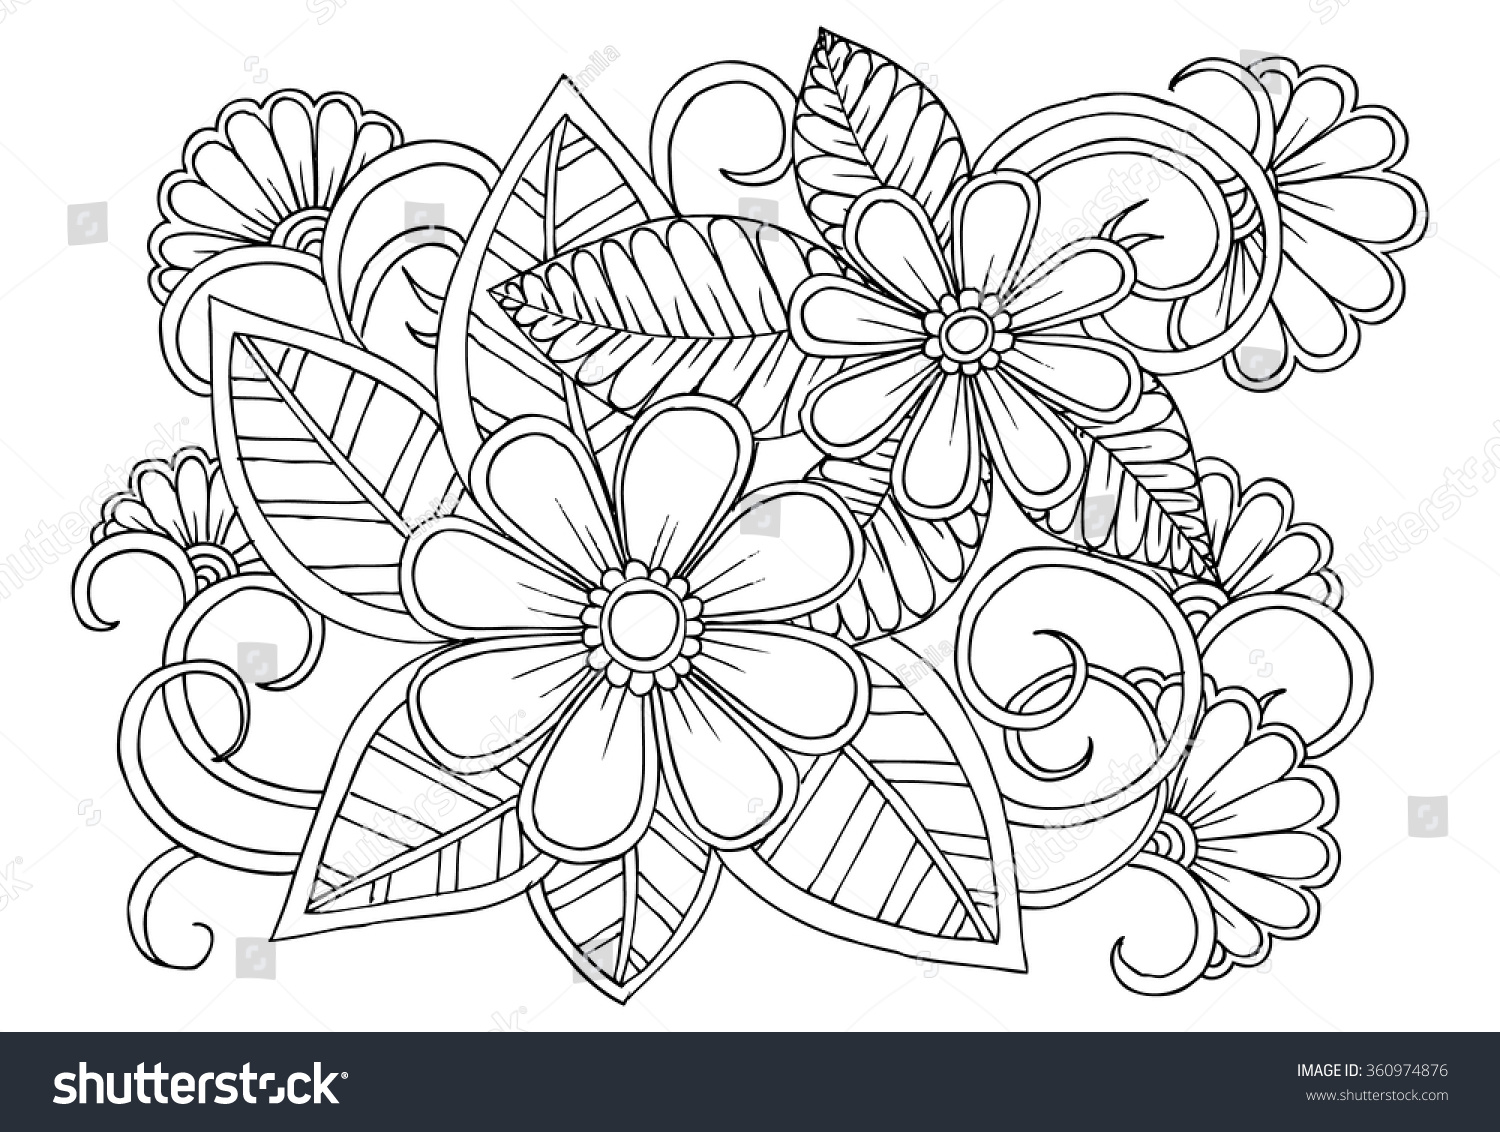 Doodle floral pattern black white page stock vector for Drawing of carpet design